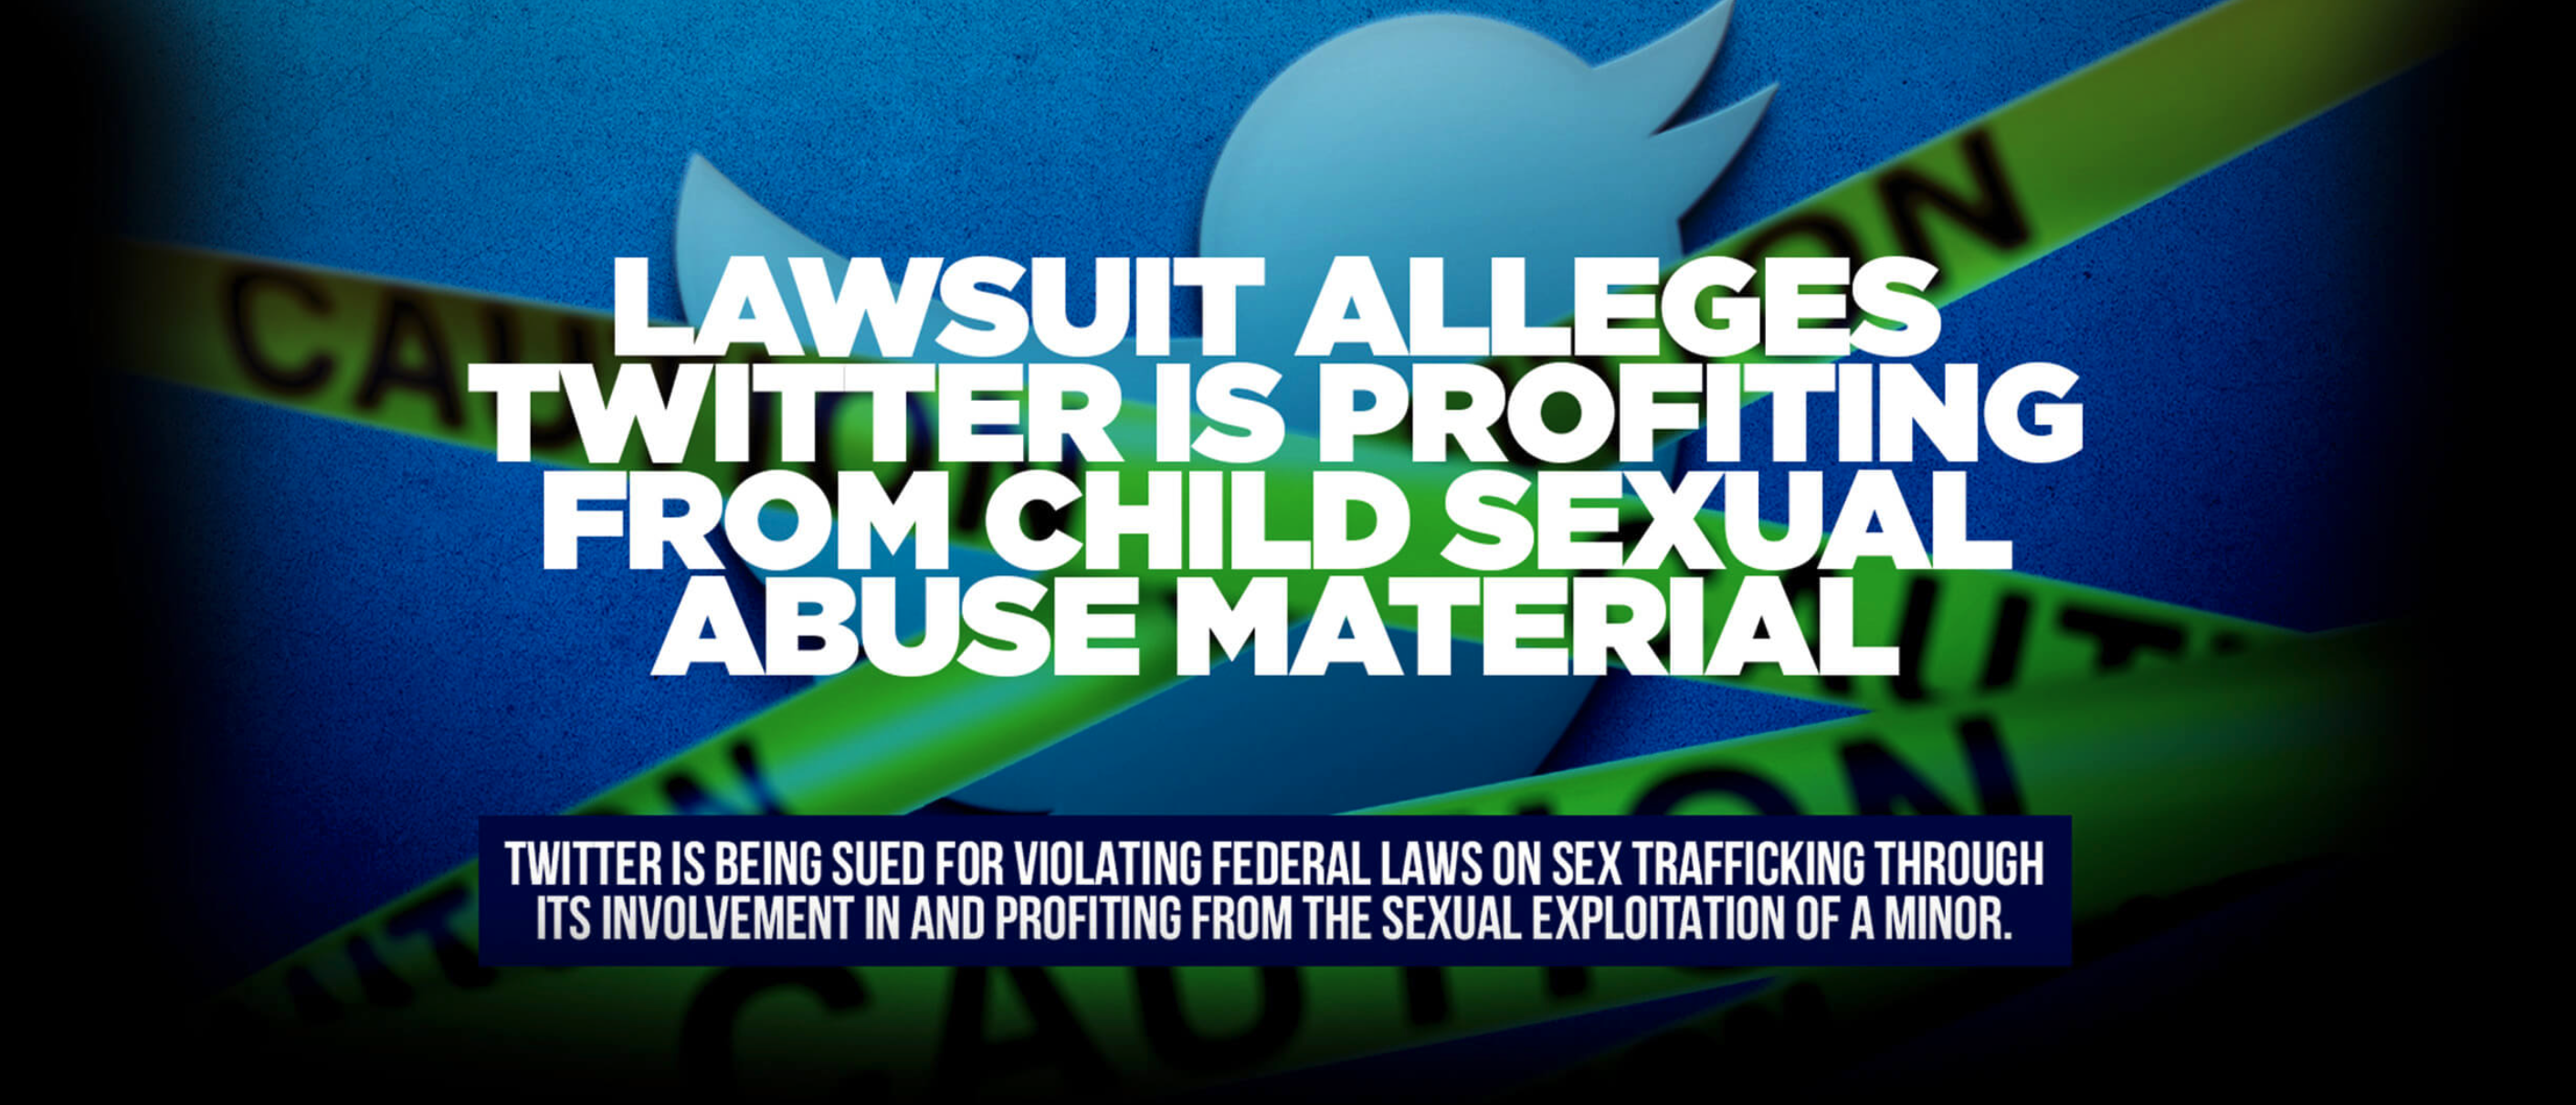 Twitter Is Profiting from Child Sexual Abuse Material: Twitter is being sued by the National Center on Sexual Exploitation Law Center, on behalf of John Doe, for violating federal law on sex trafficking through its involvement in and profiting from the sexual exploitation of a minor.